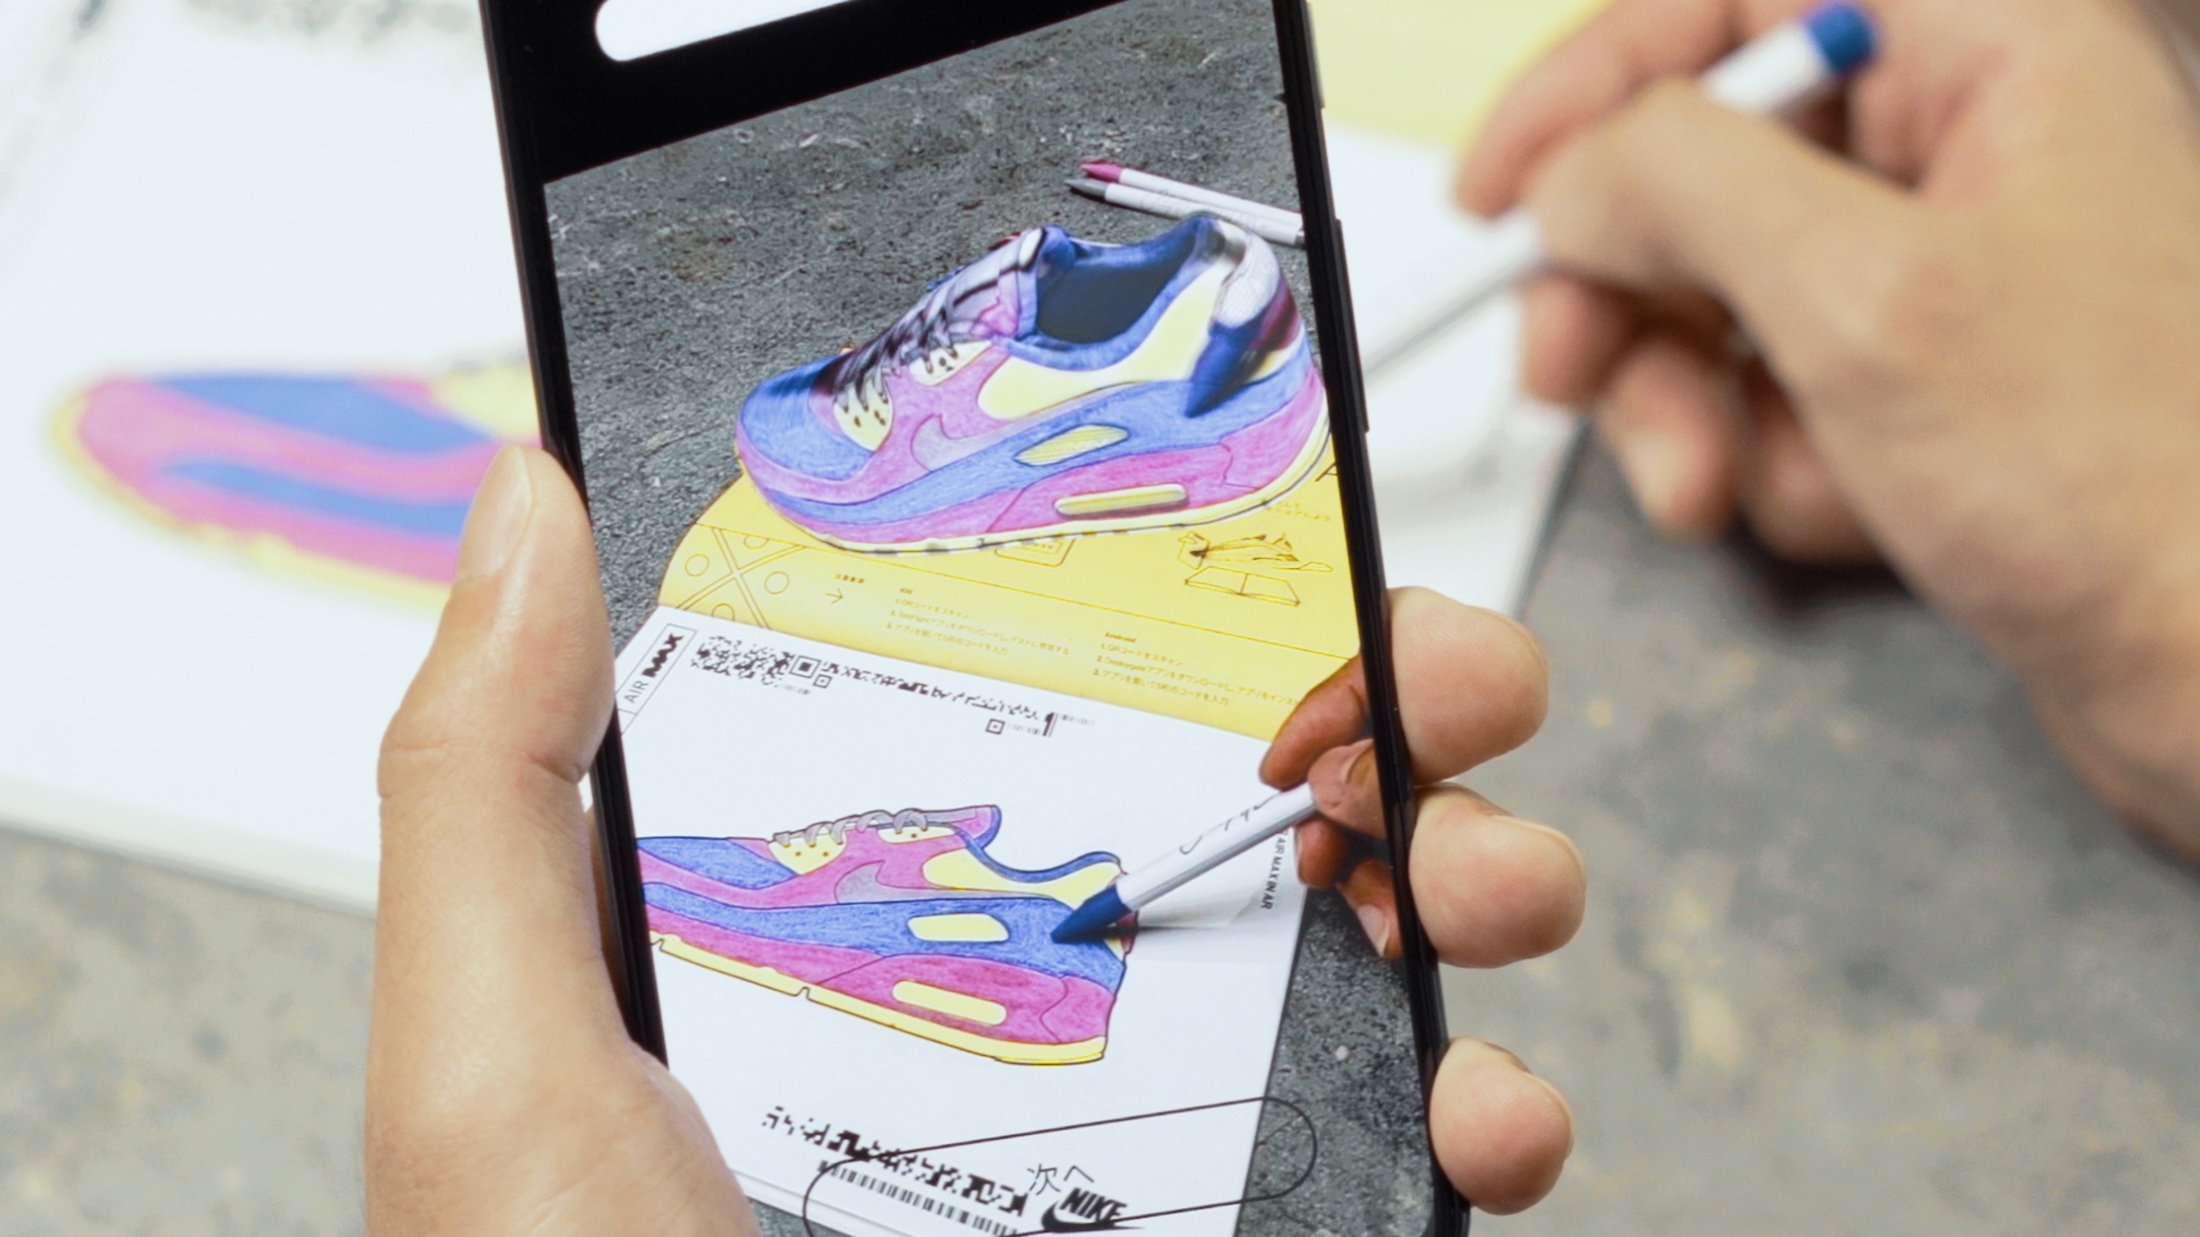 Thumbnail for Nike Create with Air Max